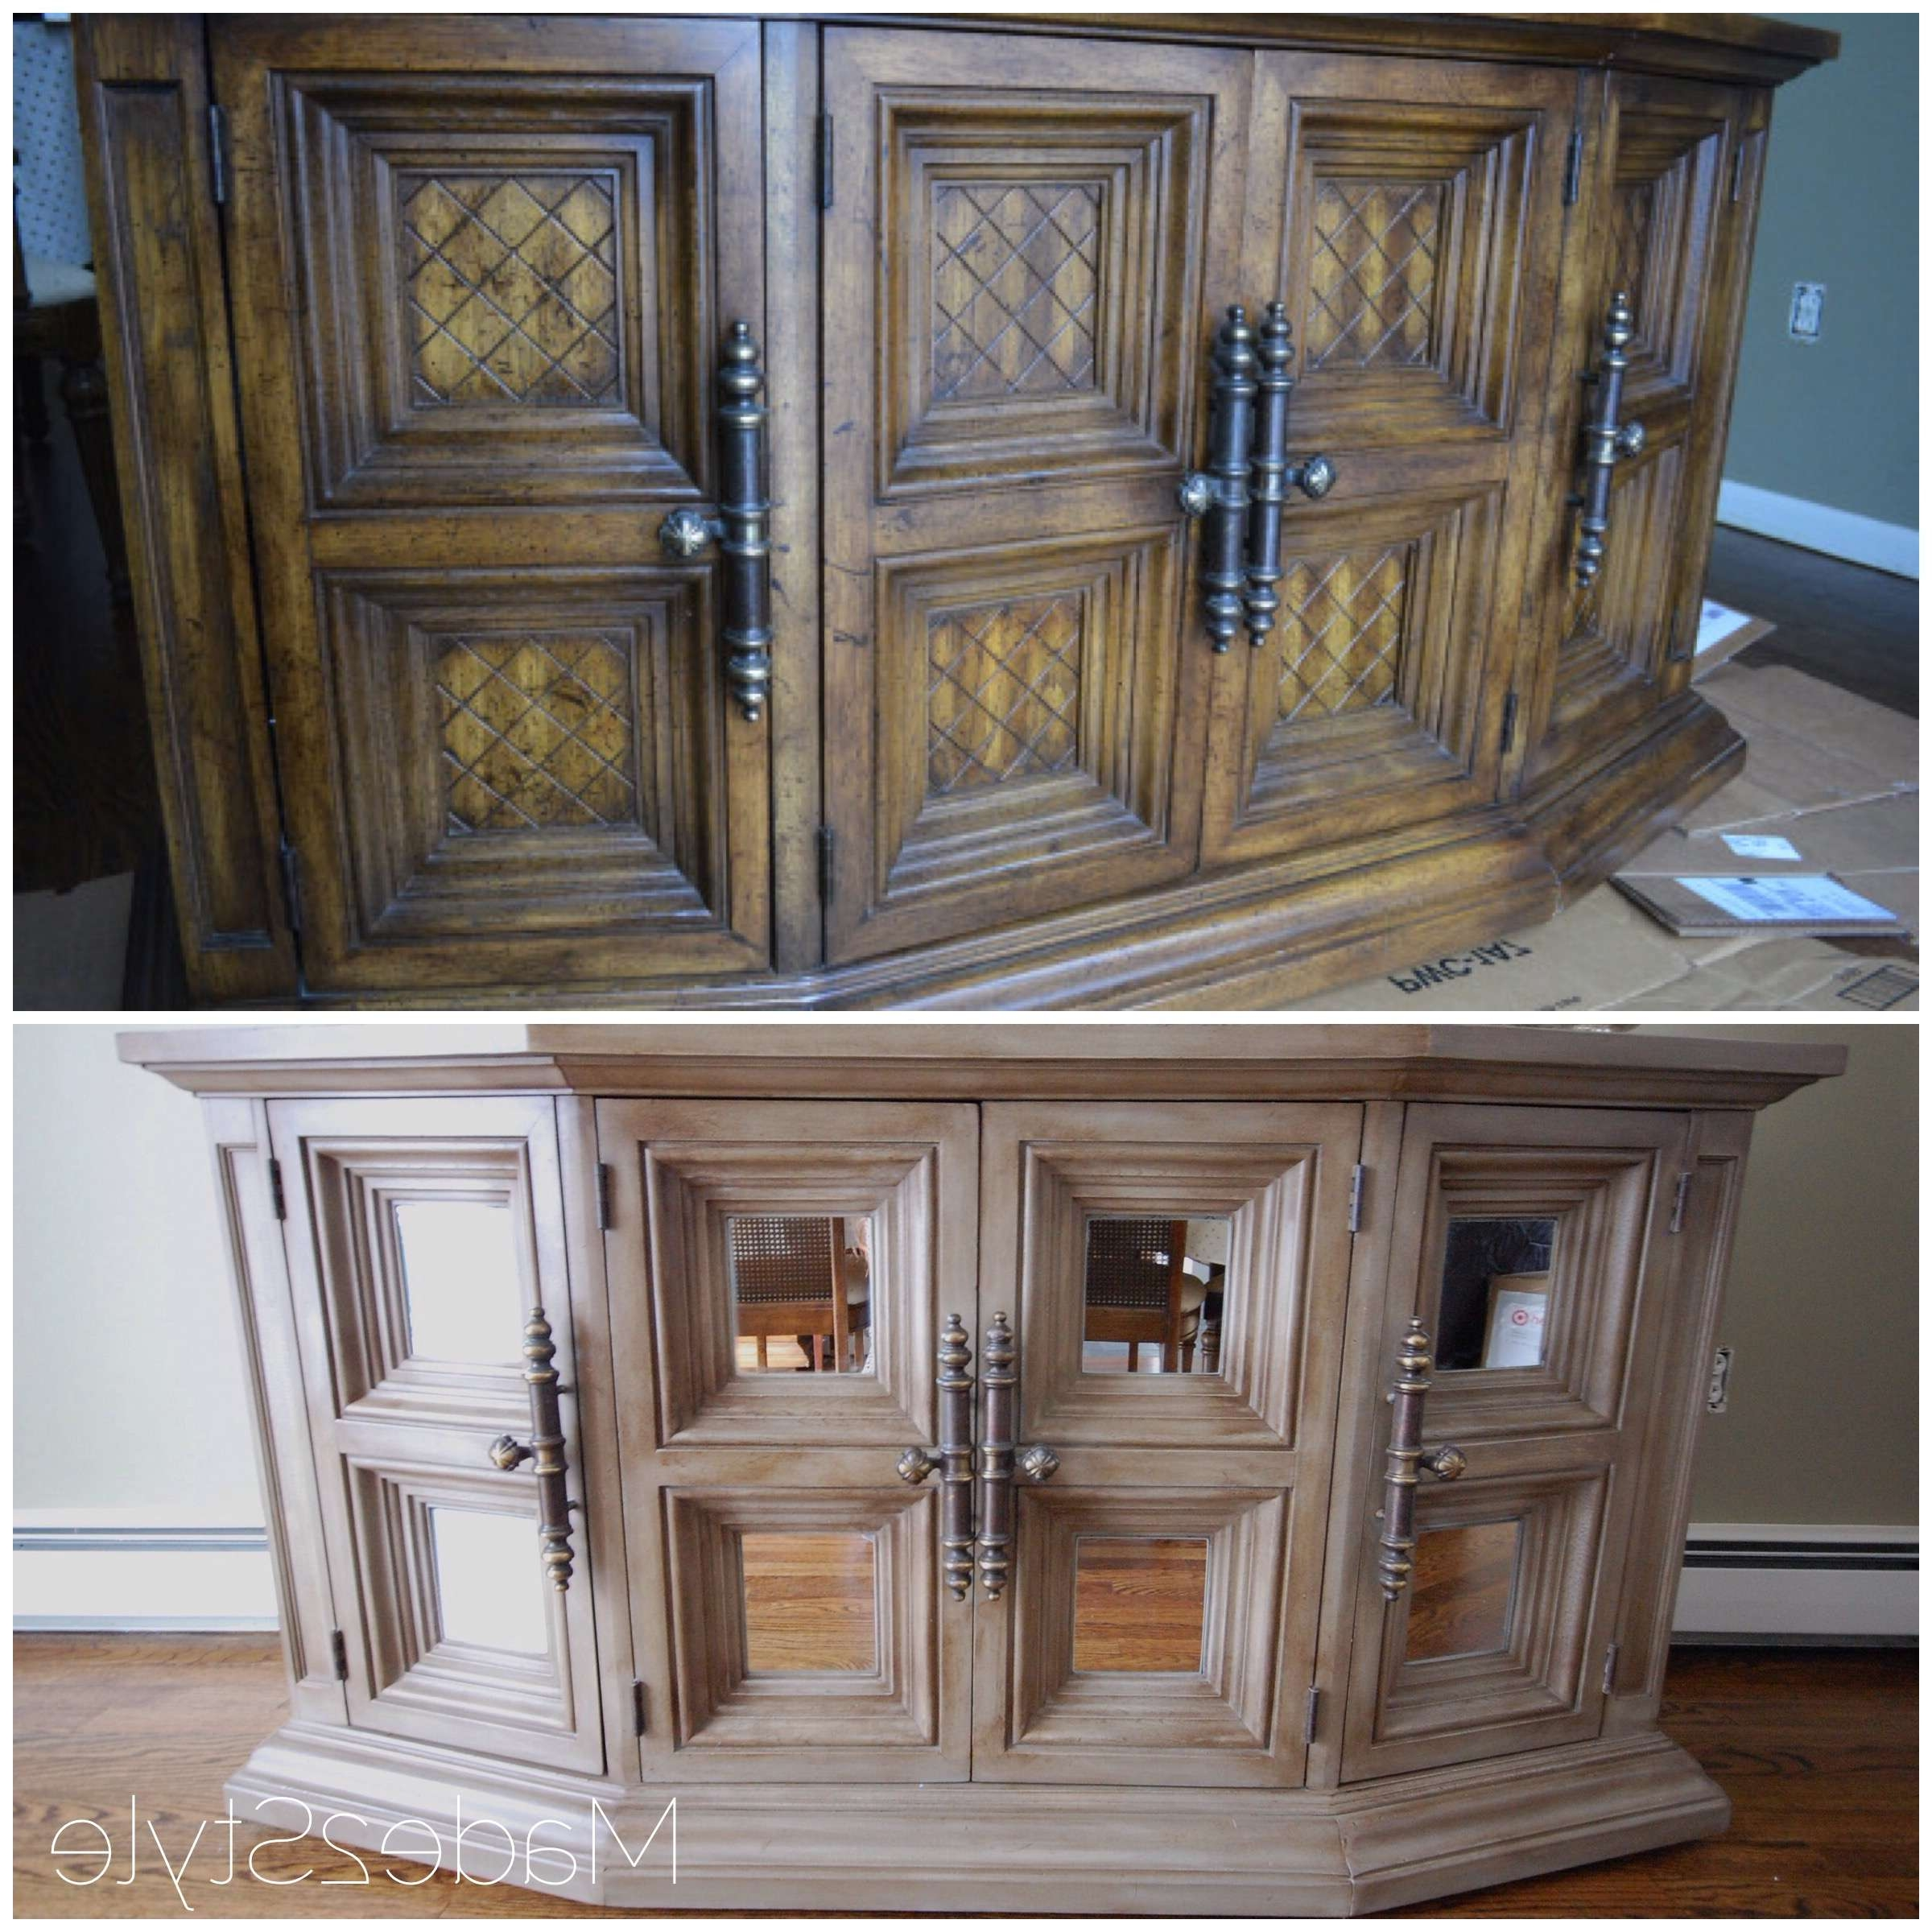 Chalk Painted Buffet Makeover (Rh Inspired) Regarding Chalk Painted Sideboards (View 7 of 20)